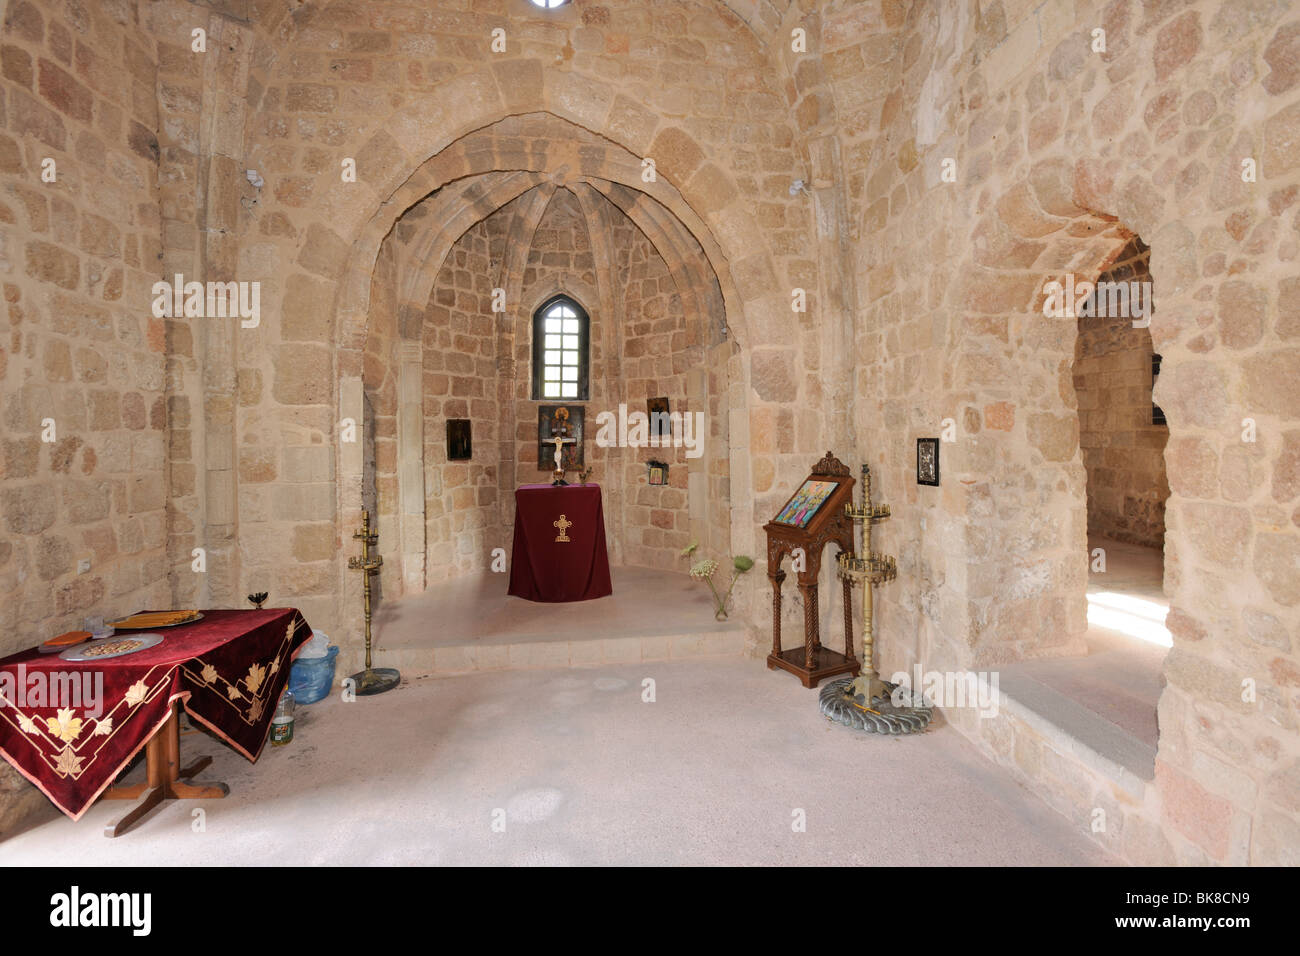 Church of the Holy Apostles, 15th century, Rhodes Town, Rhodes, Greece, Europe - Stock Image